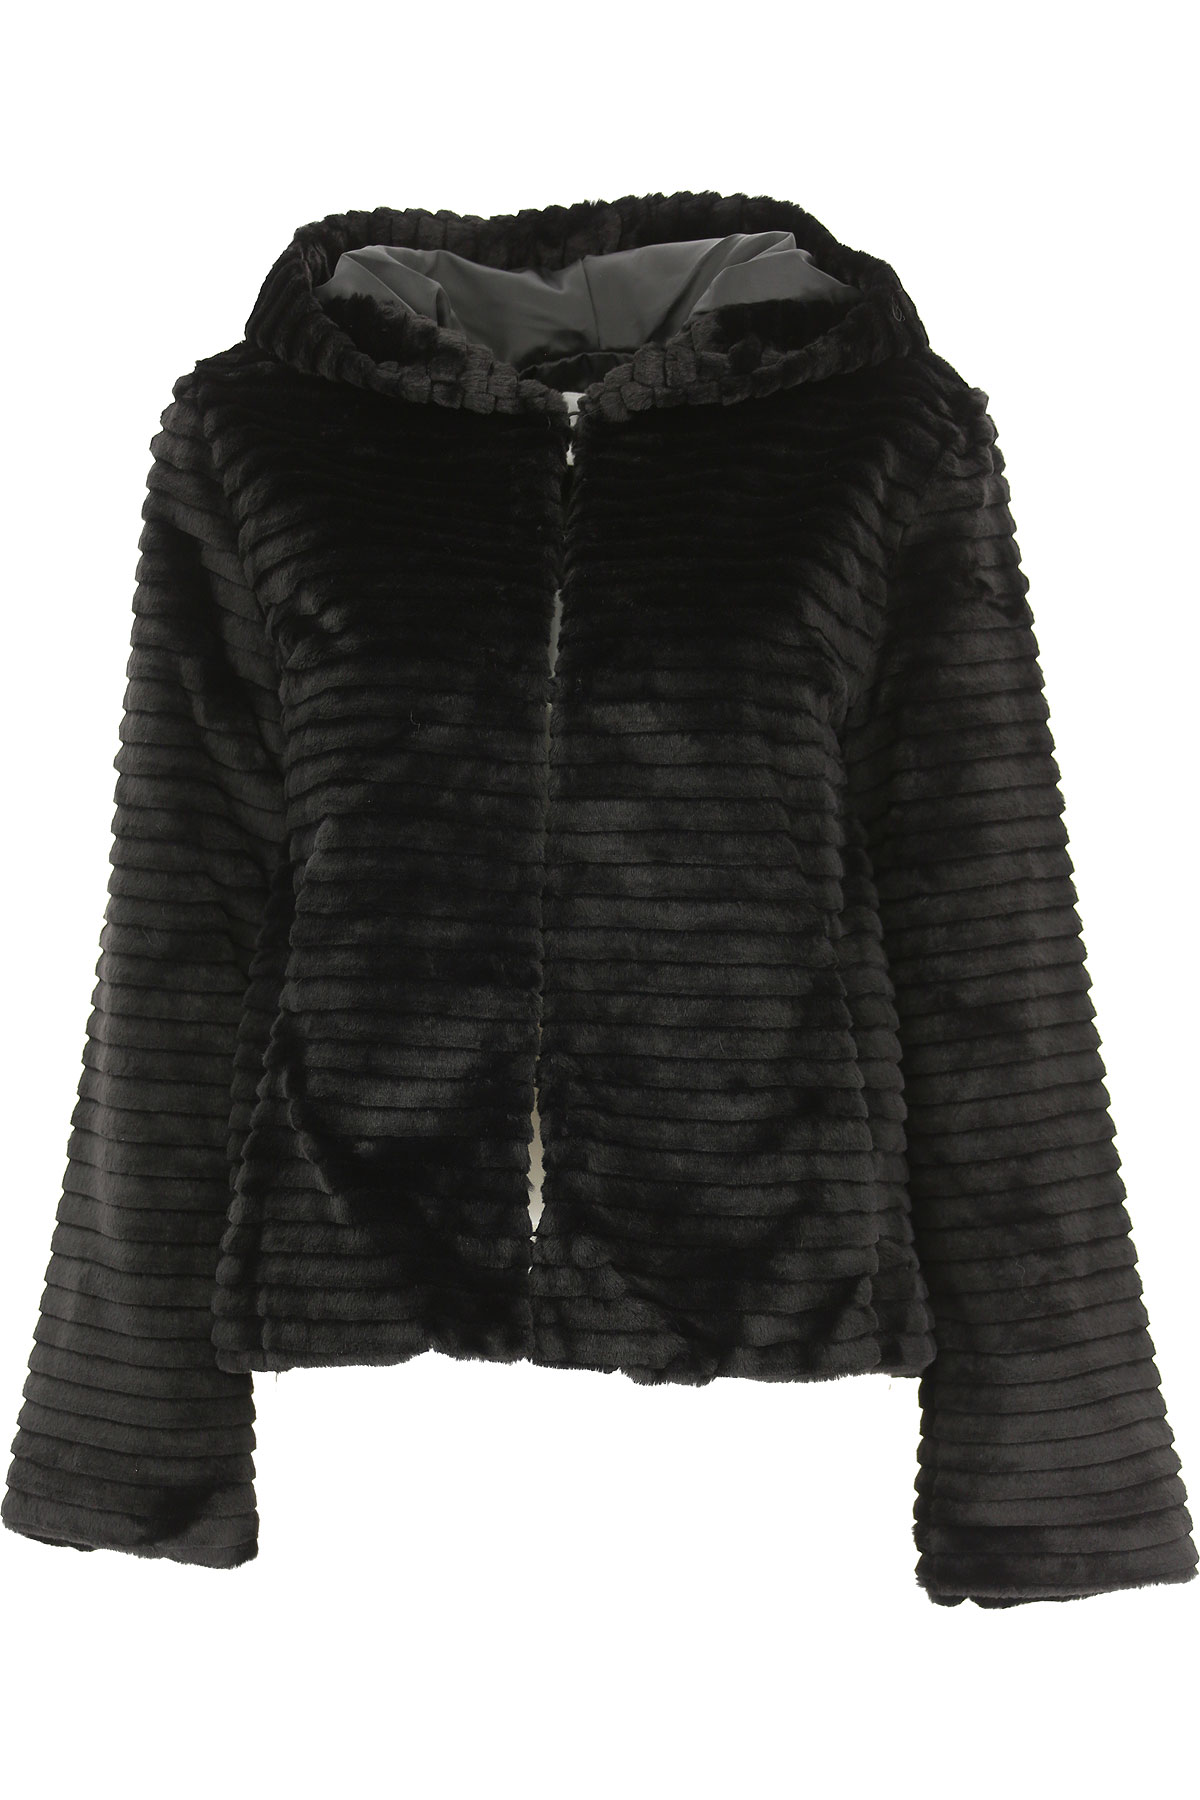 Image of Silvian Heach Jacket for Women, Black, polyester, 2017, 10 4 6 8